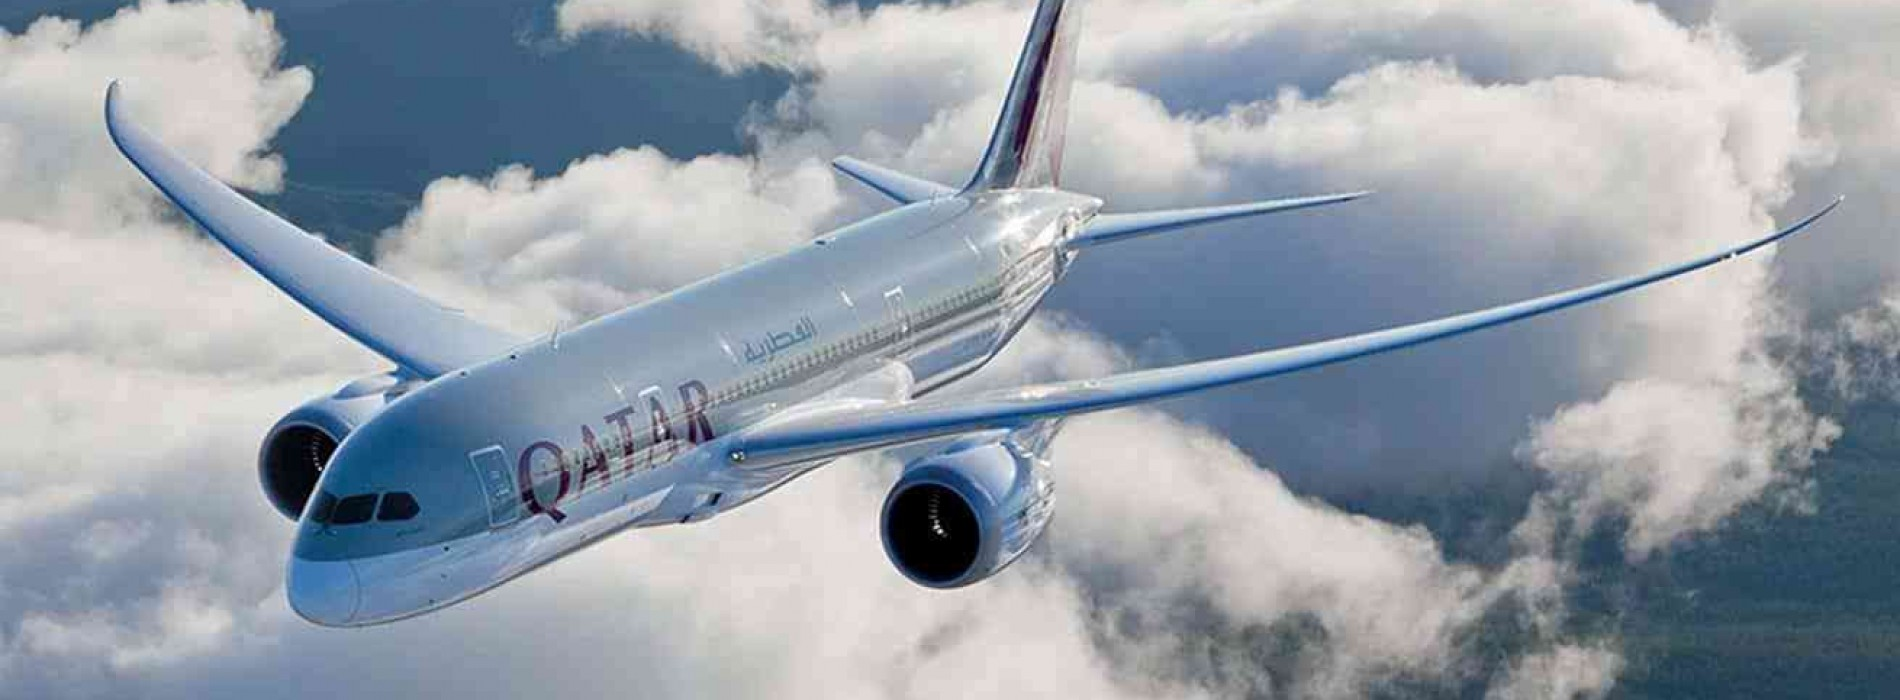 Qatar Airways to soon apply for launch of Indian airline, says CEO